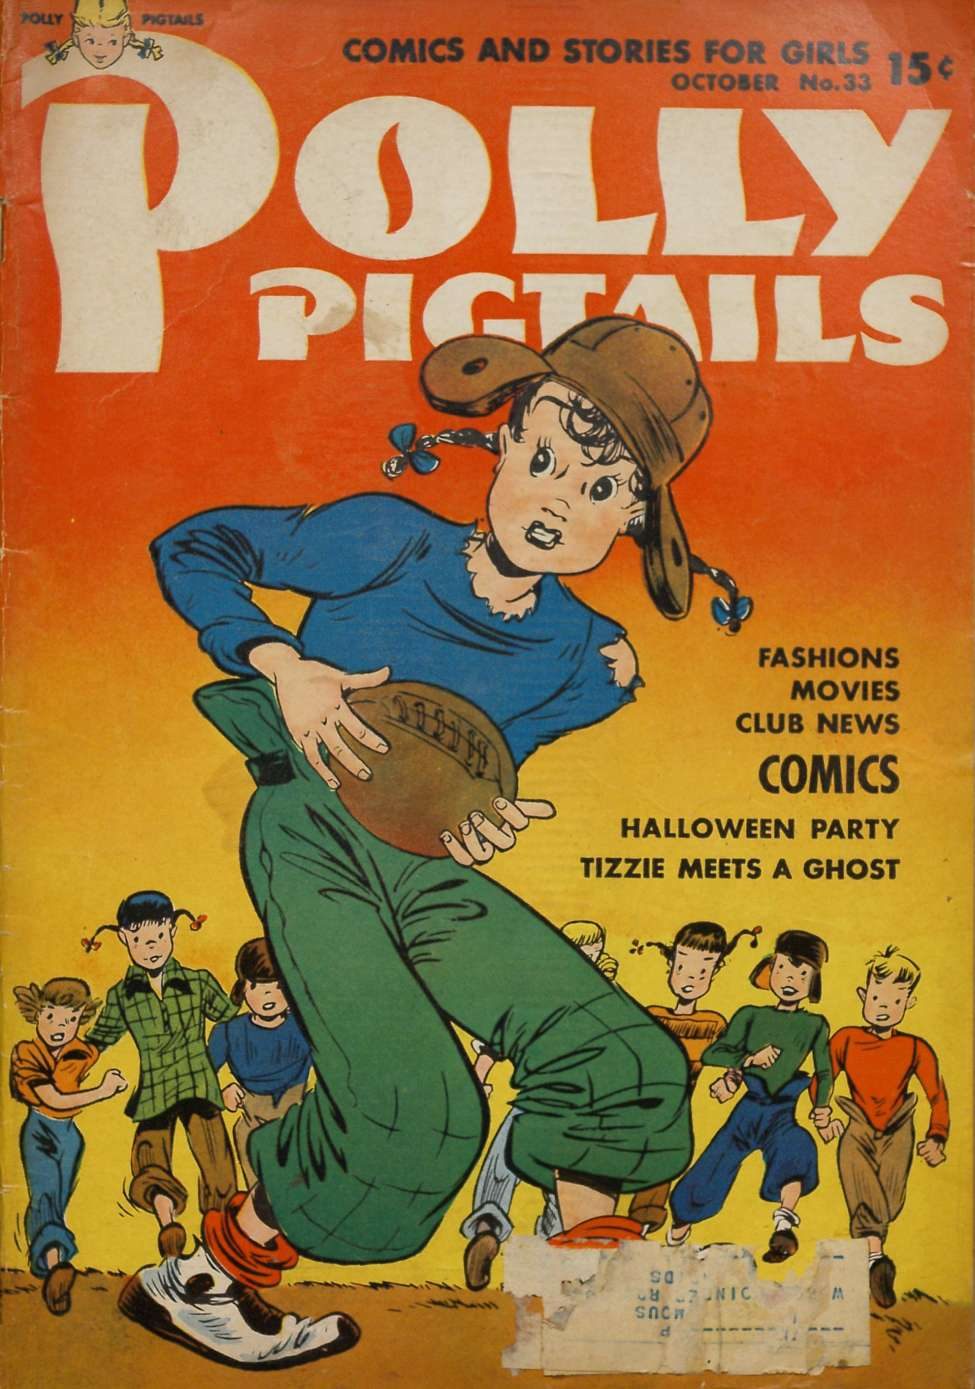 Comic Book Cover For Polly Pigtails #33